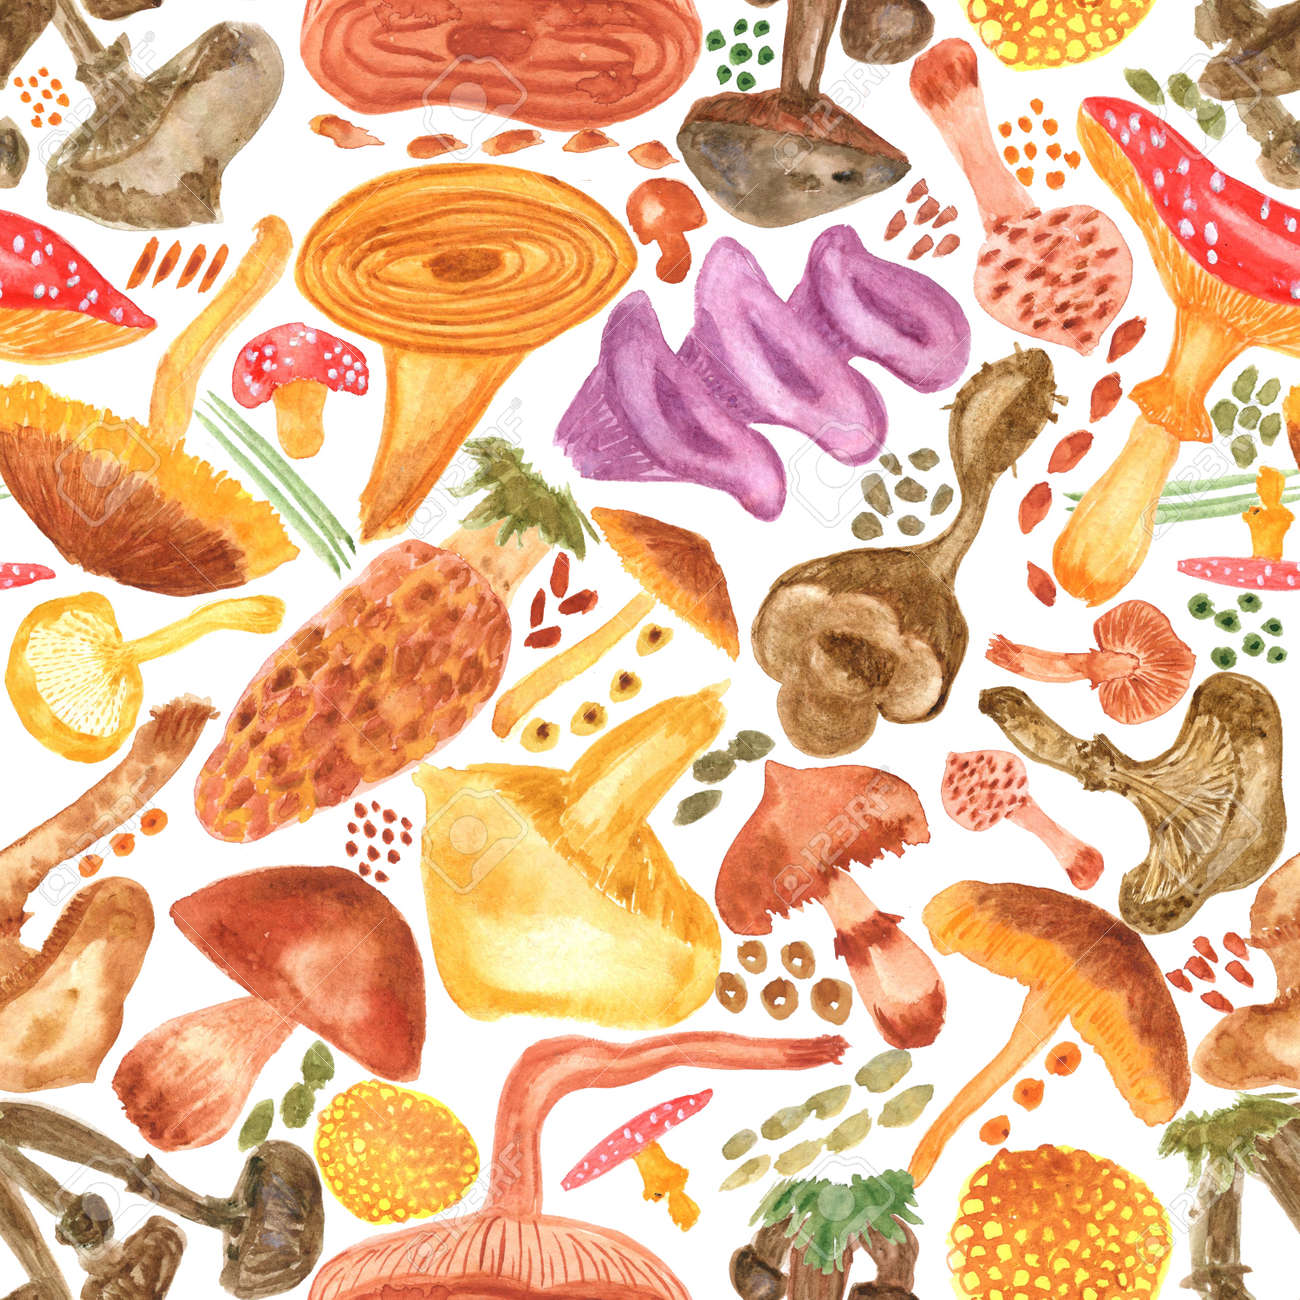 Seamless watercolor background with mushrooms. Pattern for creating fabrics, wallpapers, gift wrapping paper, invitations, textile, scrapbooking. Isolated on white background. - 165387215